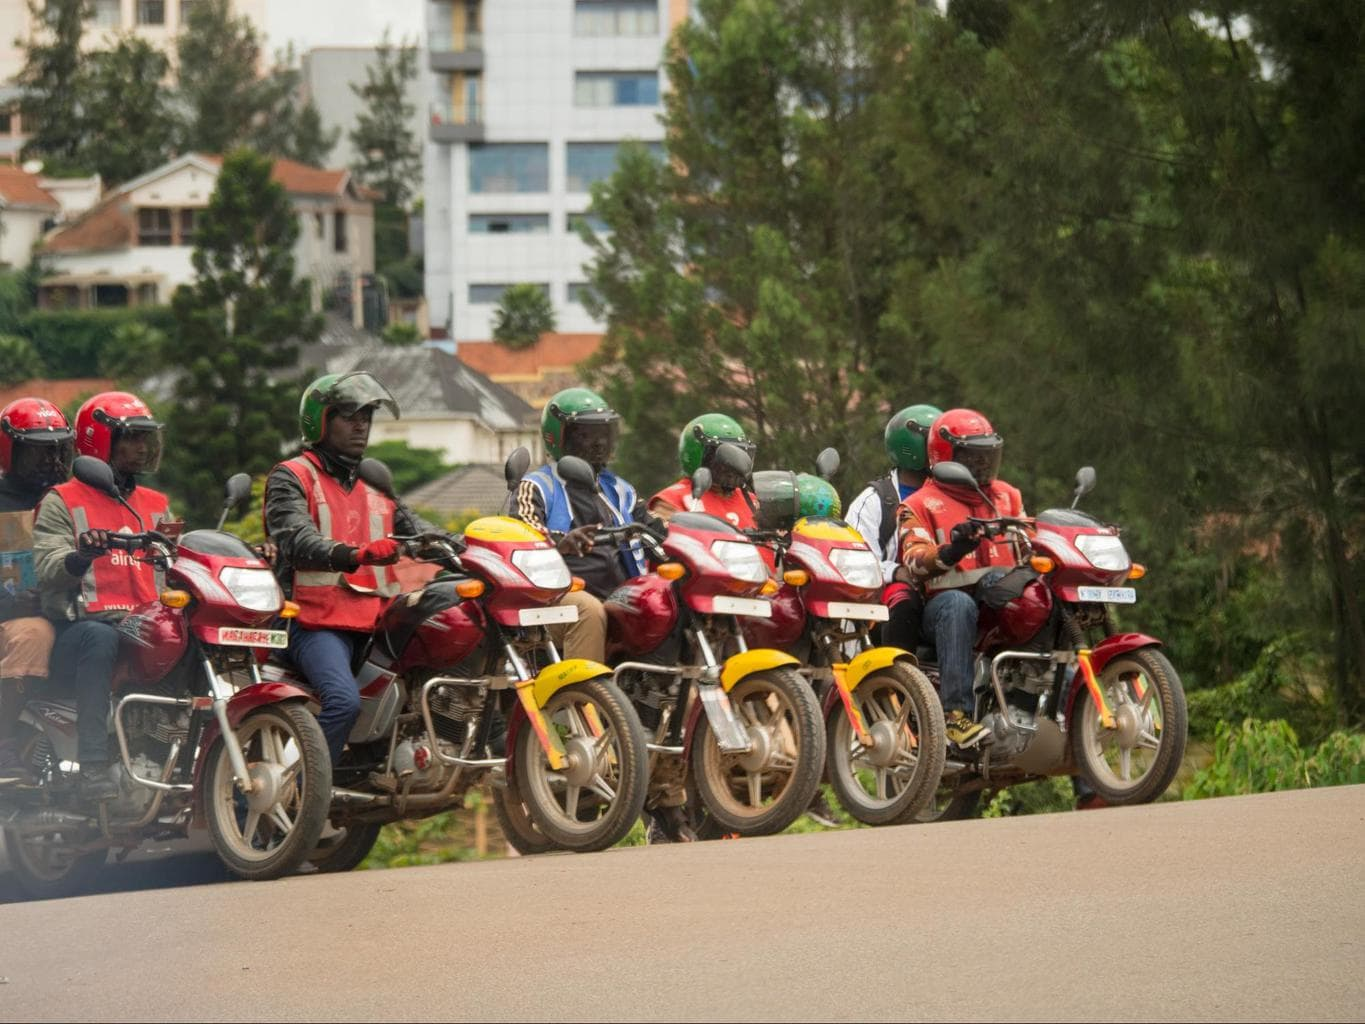 Boda Boda with helmets, passenger helmets hanging off the side, reflective vests and proper motorbikes